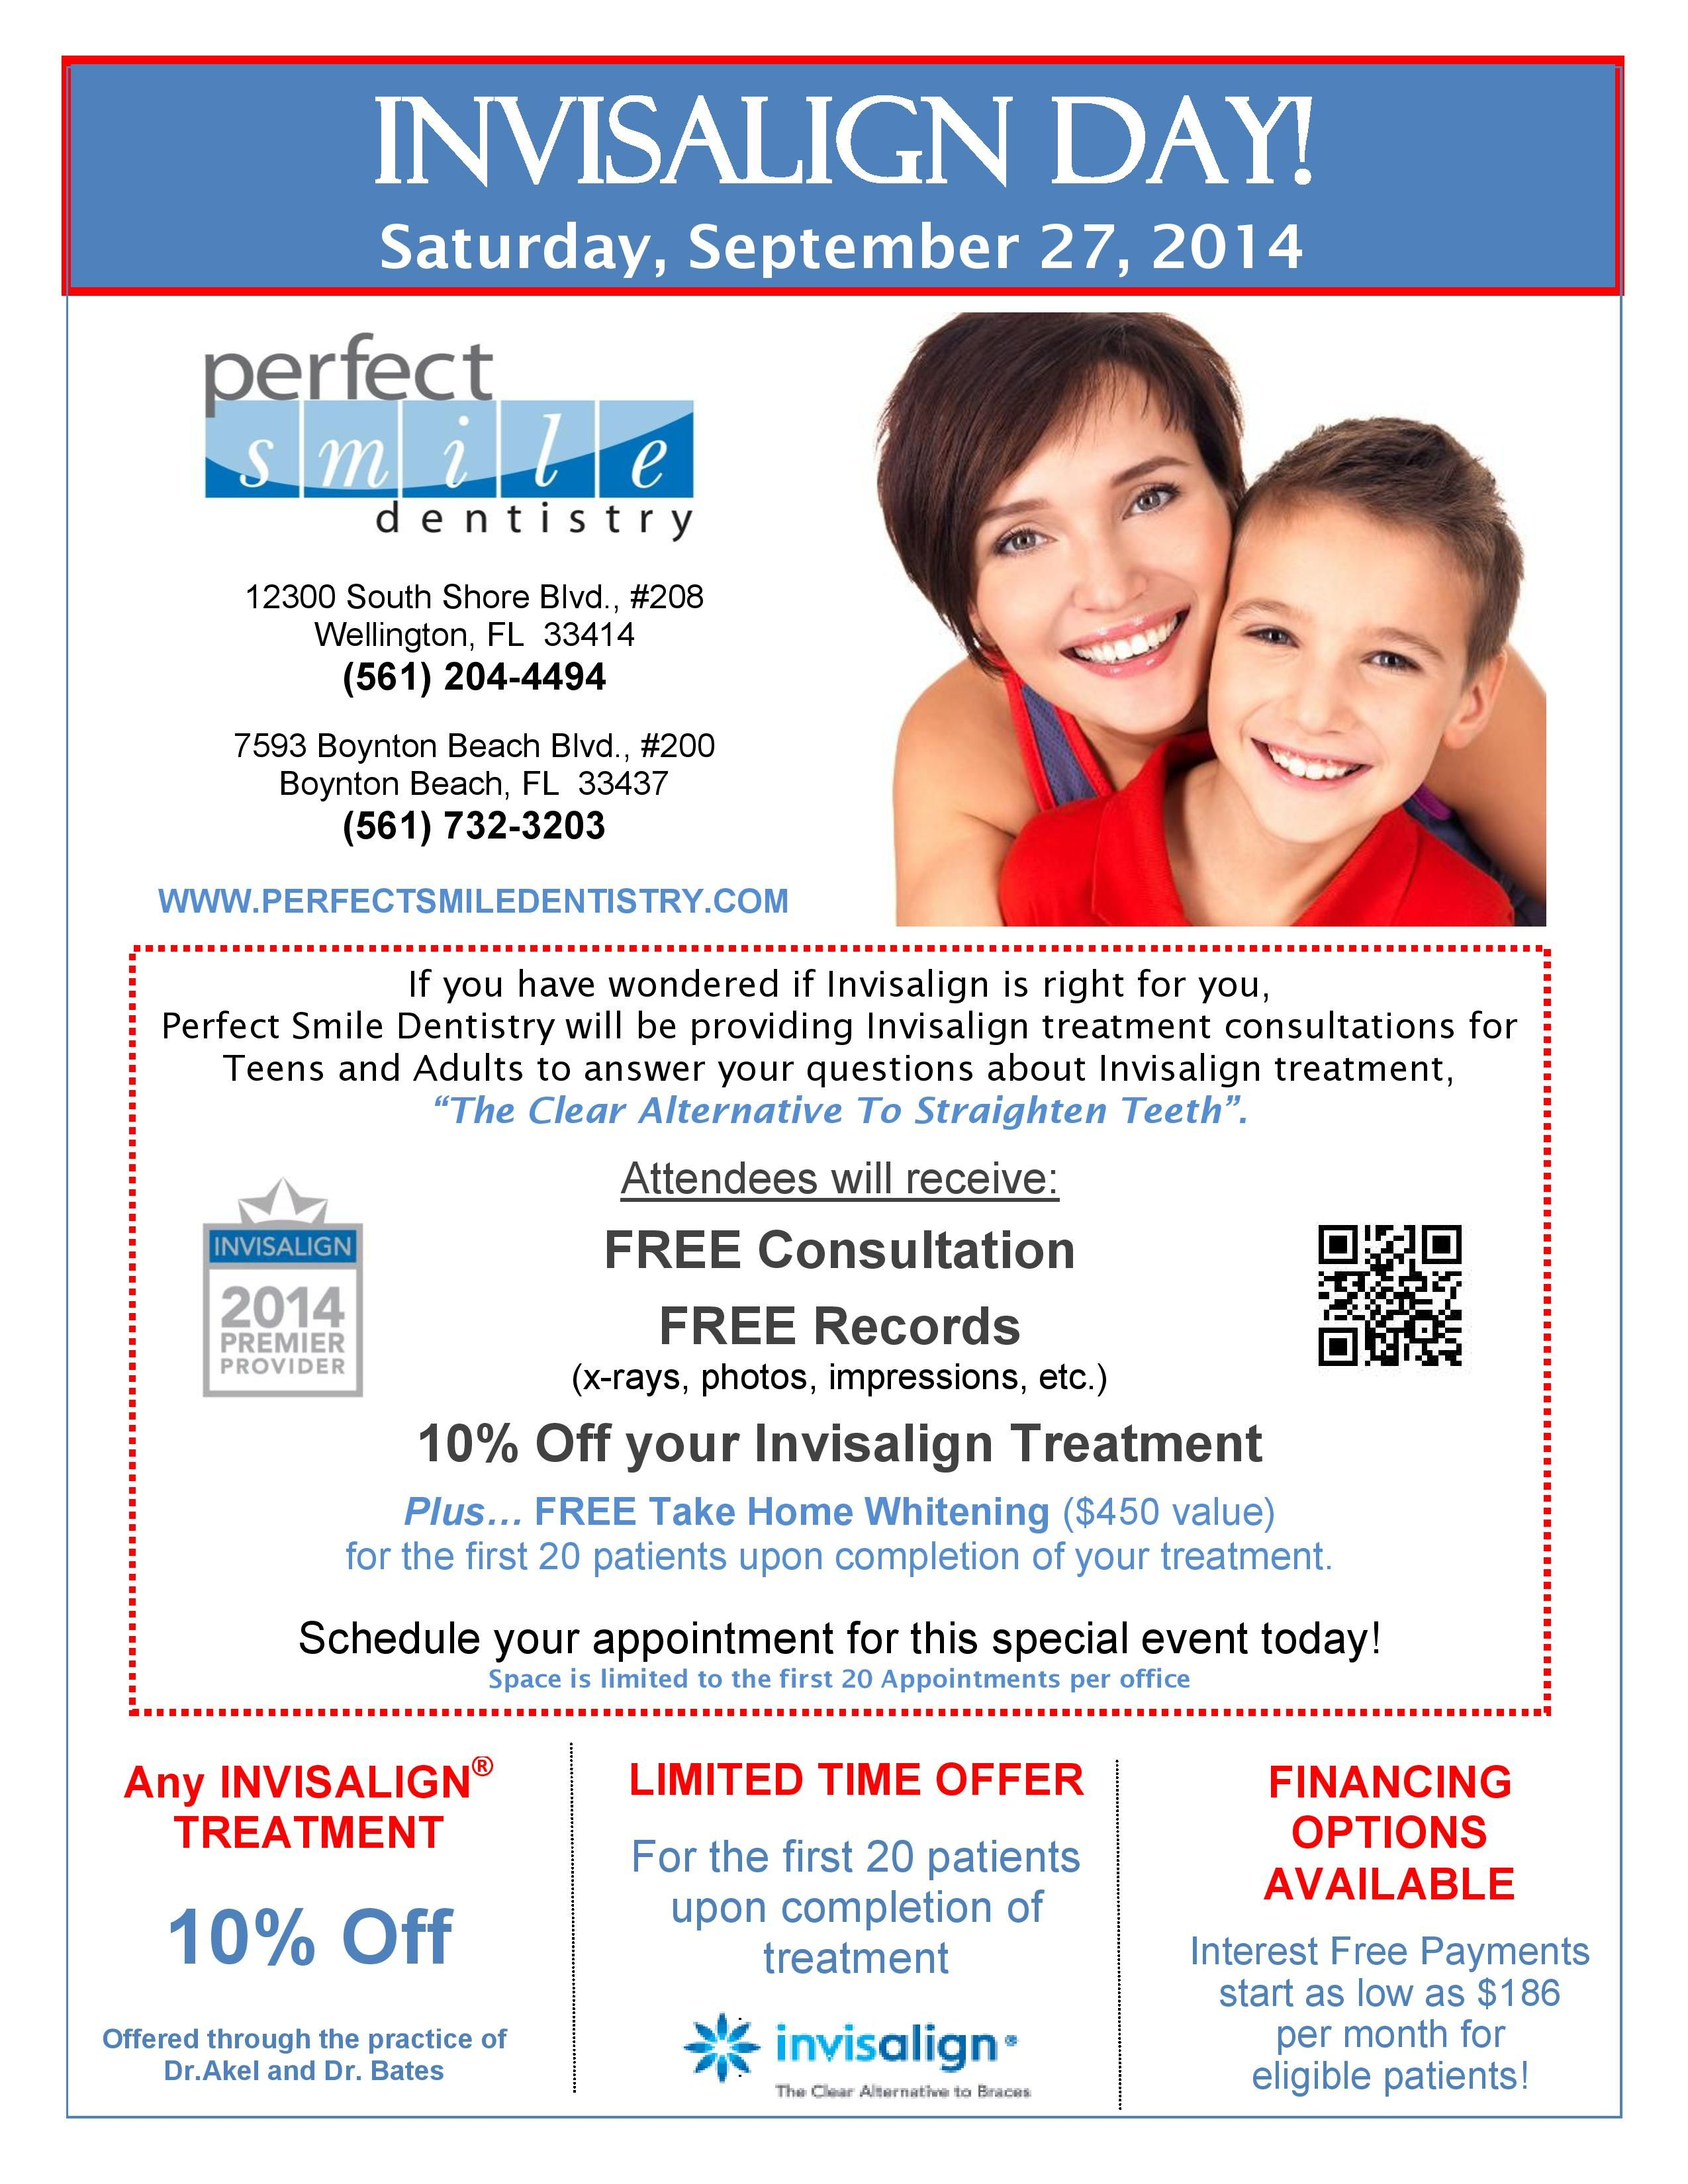 September 27 is Invisalign Day! Stop by Perfect Smile